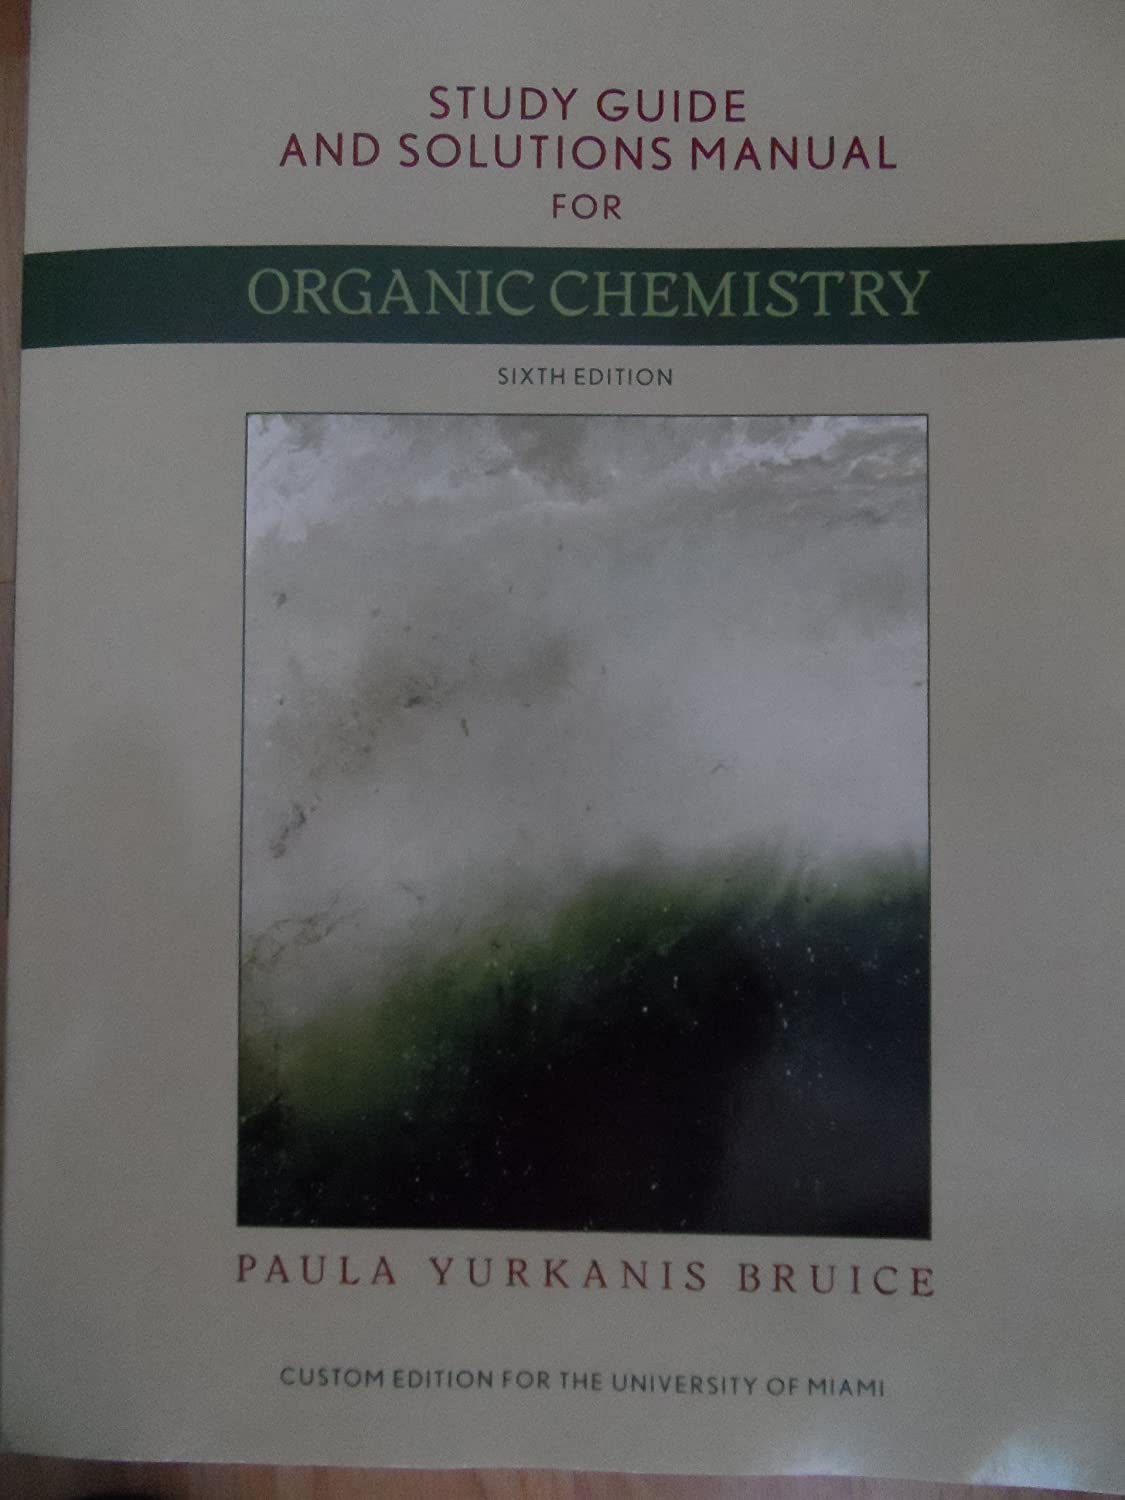 Amazon.com: Organic Chemistry 6th Edition by Bruice: Study Guide and Solutions  Manual: Paula Yurkanis Bruice: Health & Personal Care